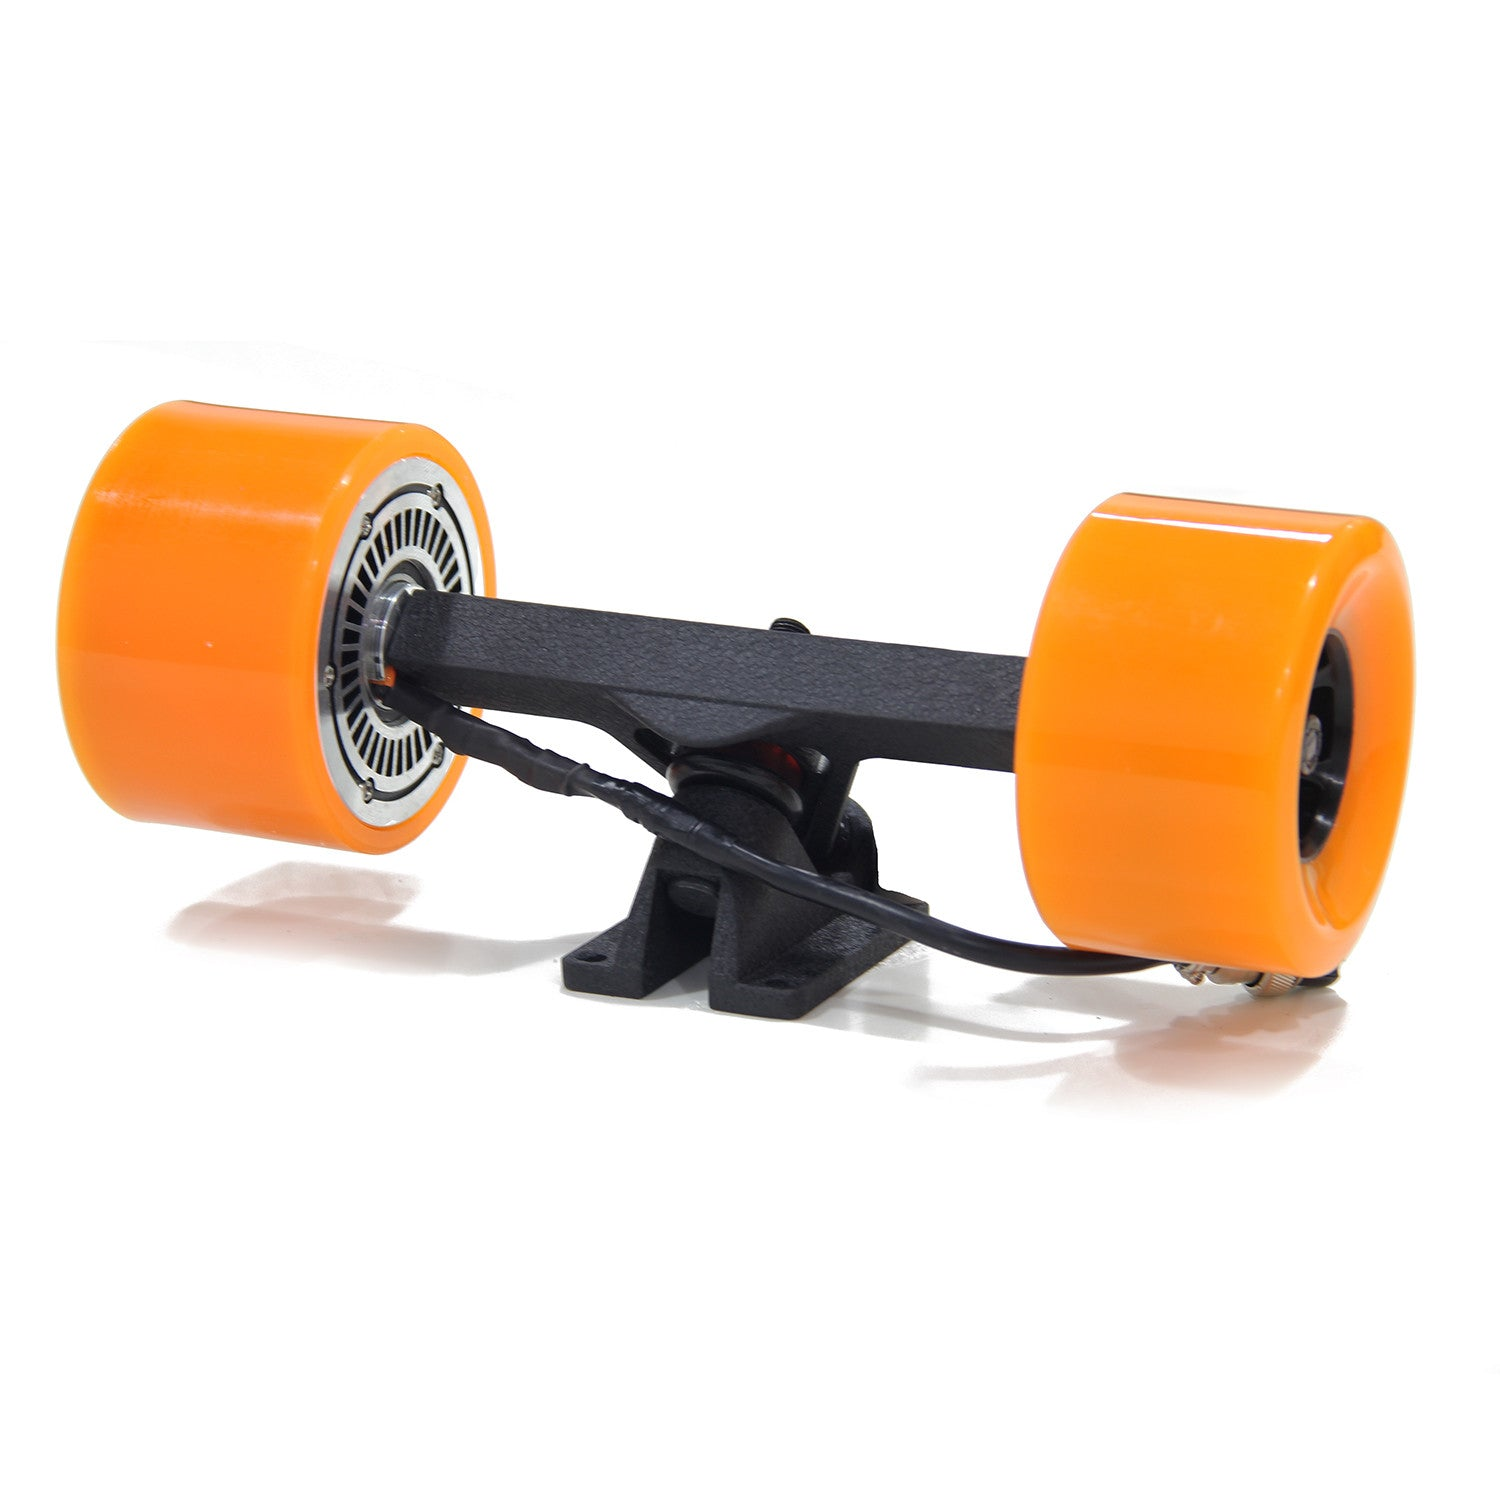 Max Kit - electric Longboard 4 wheels skateboards with remote controller skateboard kit